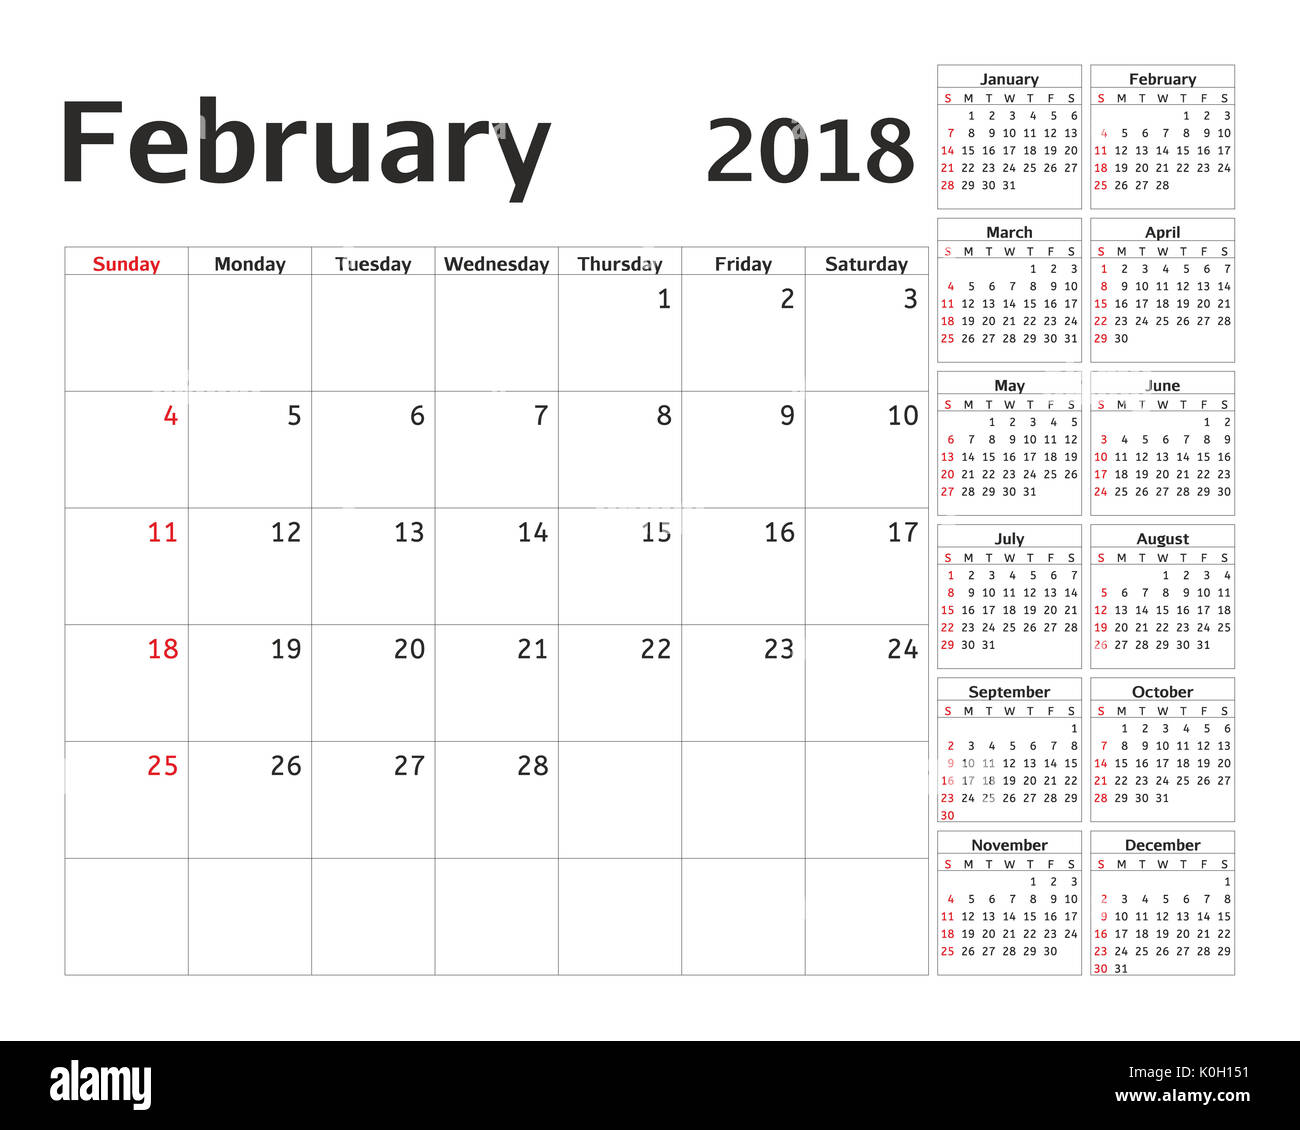 simple calendar planner for 2018 year calendar planning week design february template set of 12 months week starts sunday